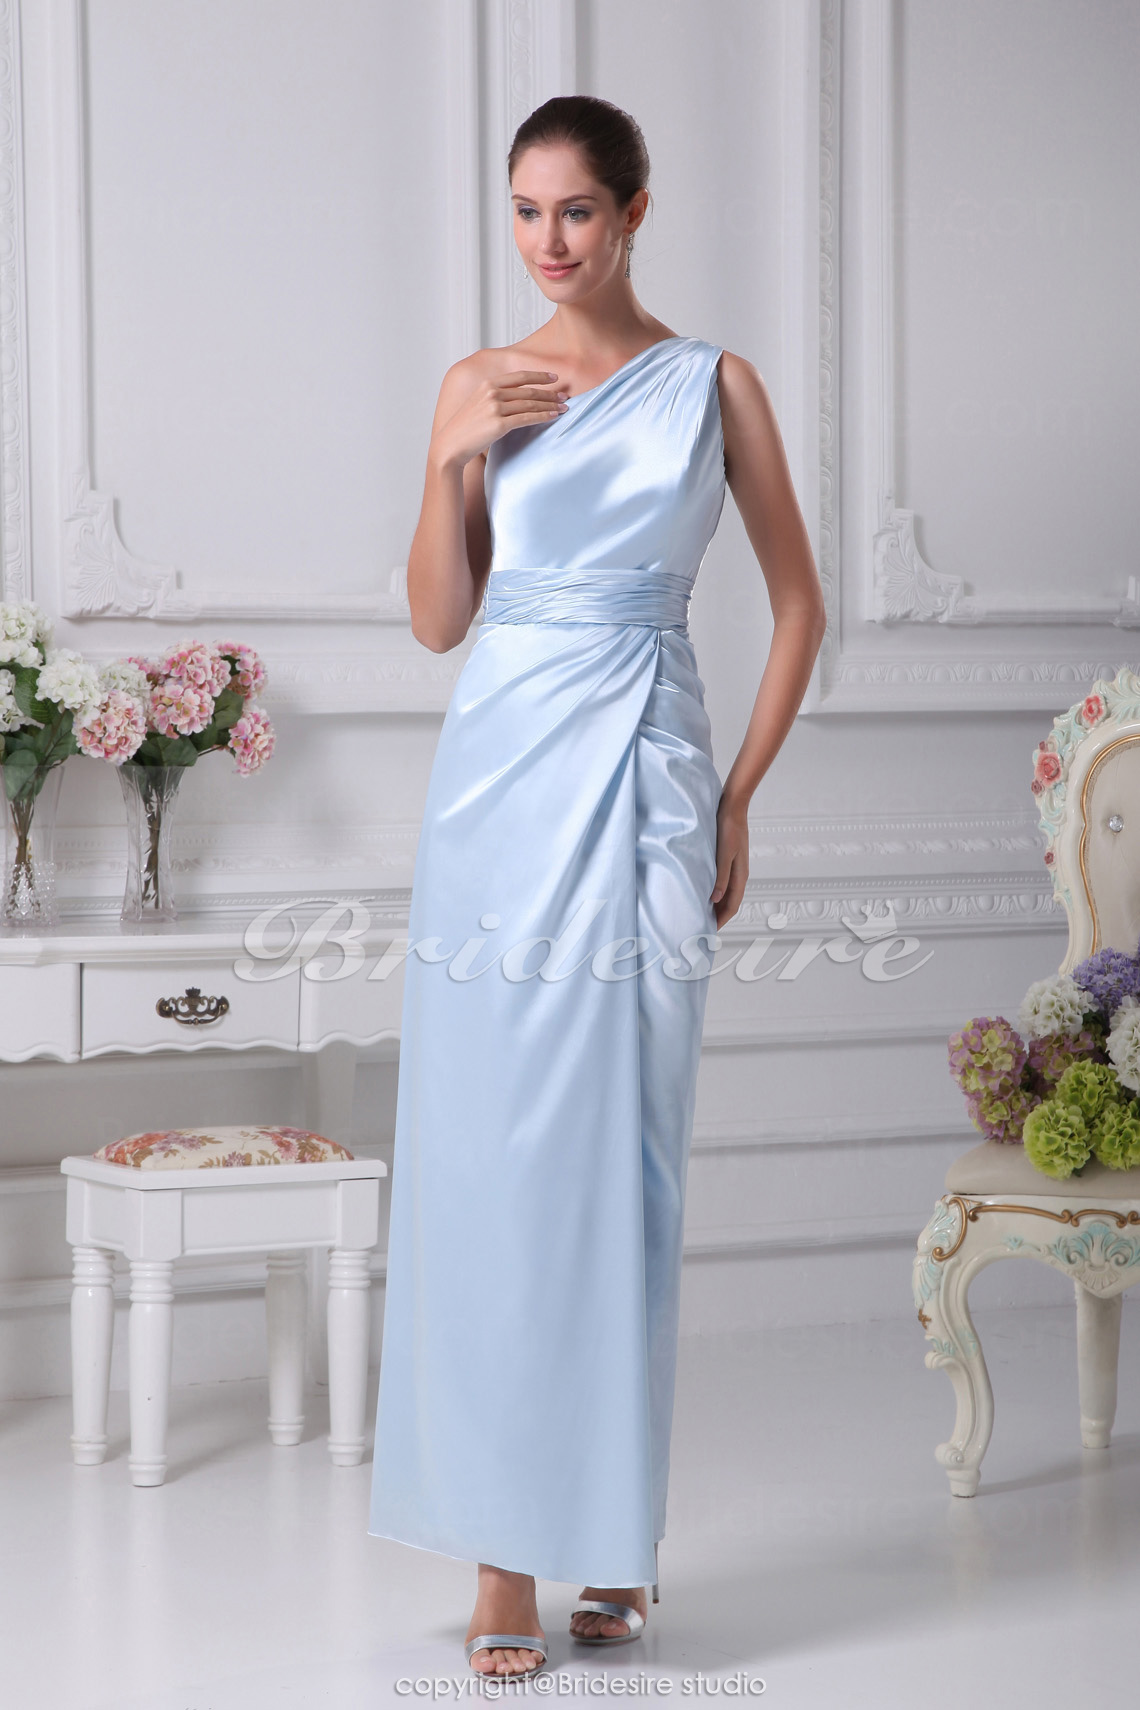 Sheath/Column One Shoulder Floor-length Sleeveless Stretch Satin Dress